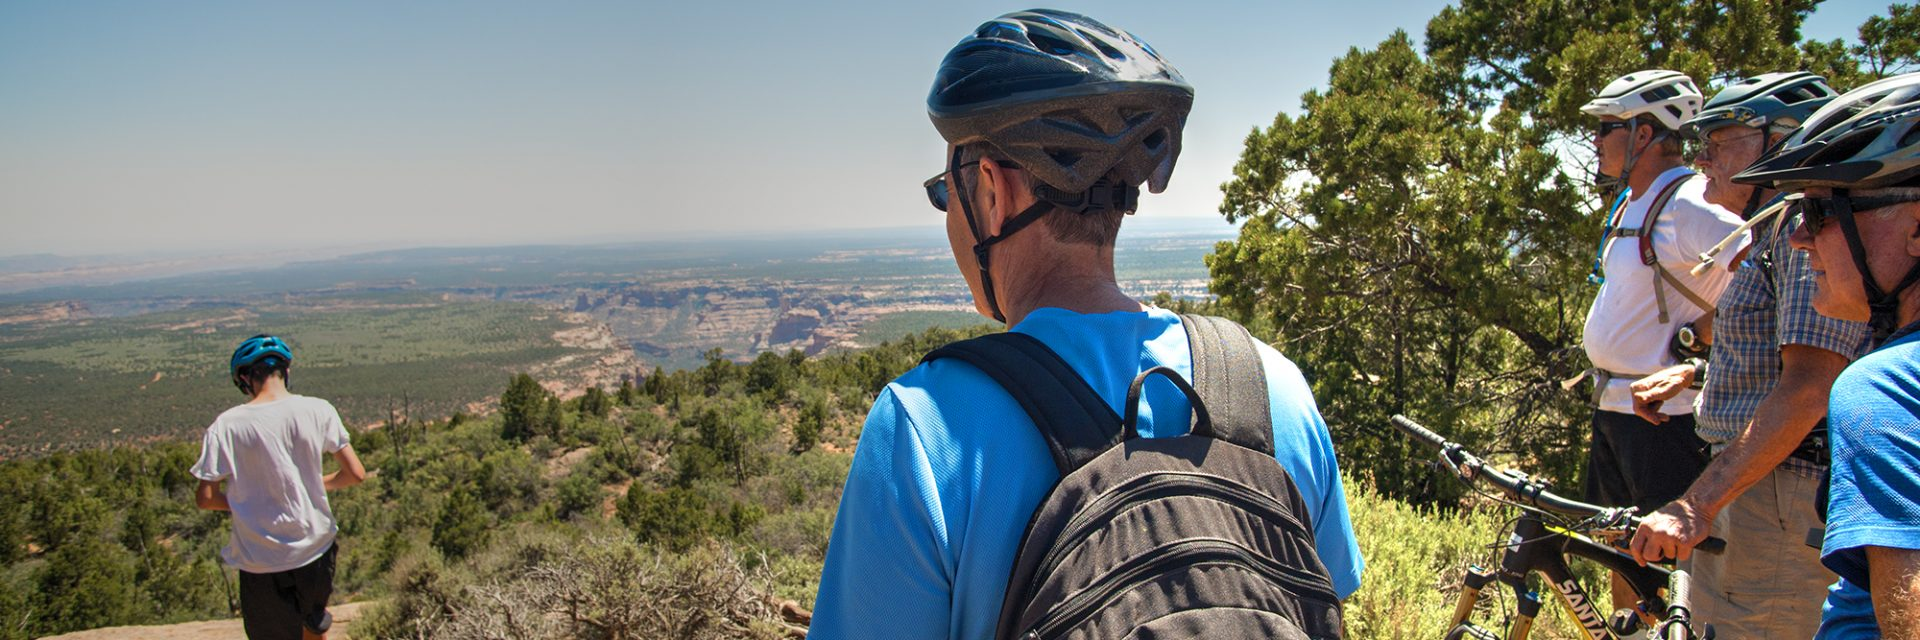 Riders on the Bears Ears tour stop at the Milk Ranch Road Overlook